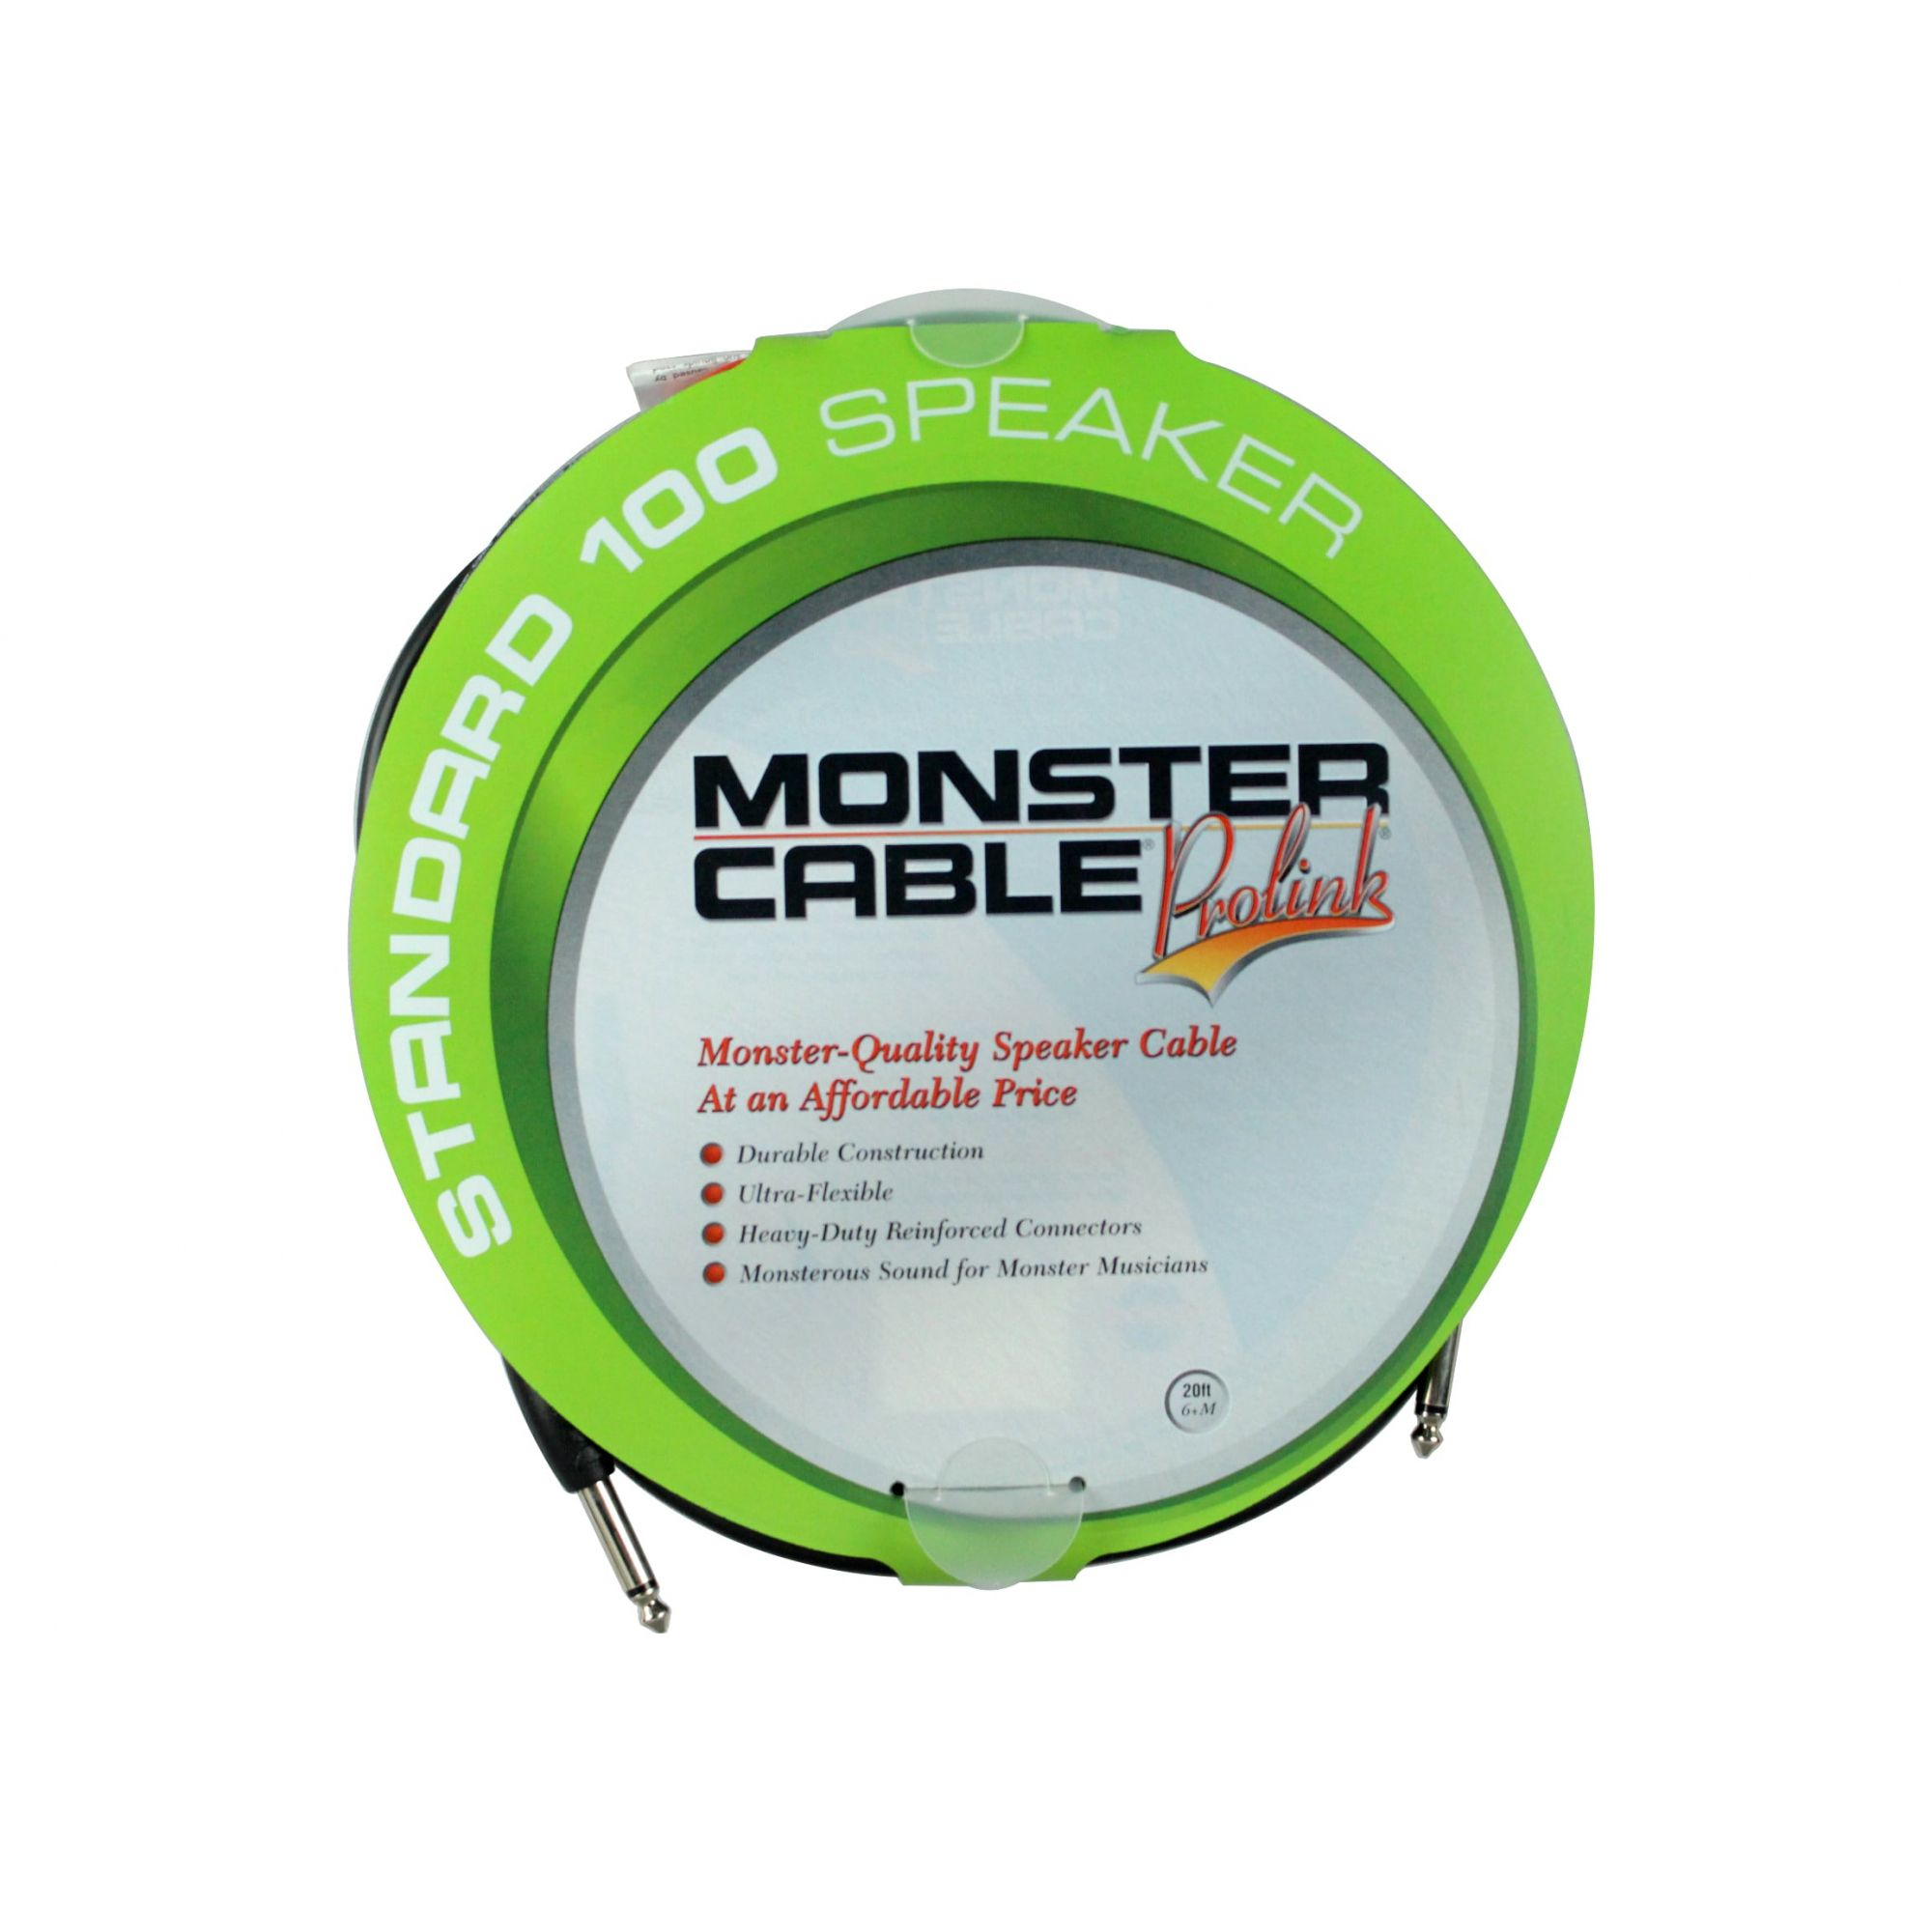 Cabo - Caixa P10 6m Monster Cable S100-S-20